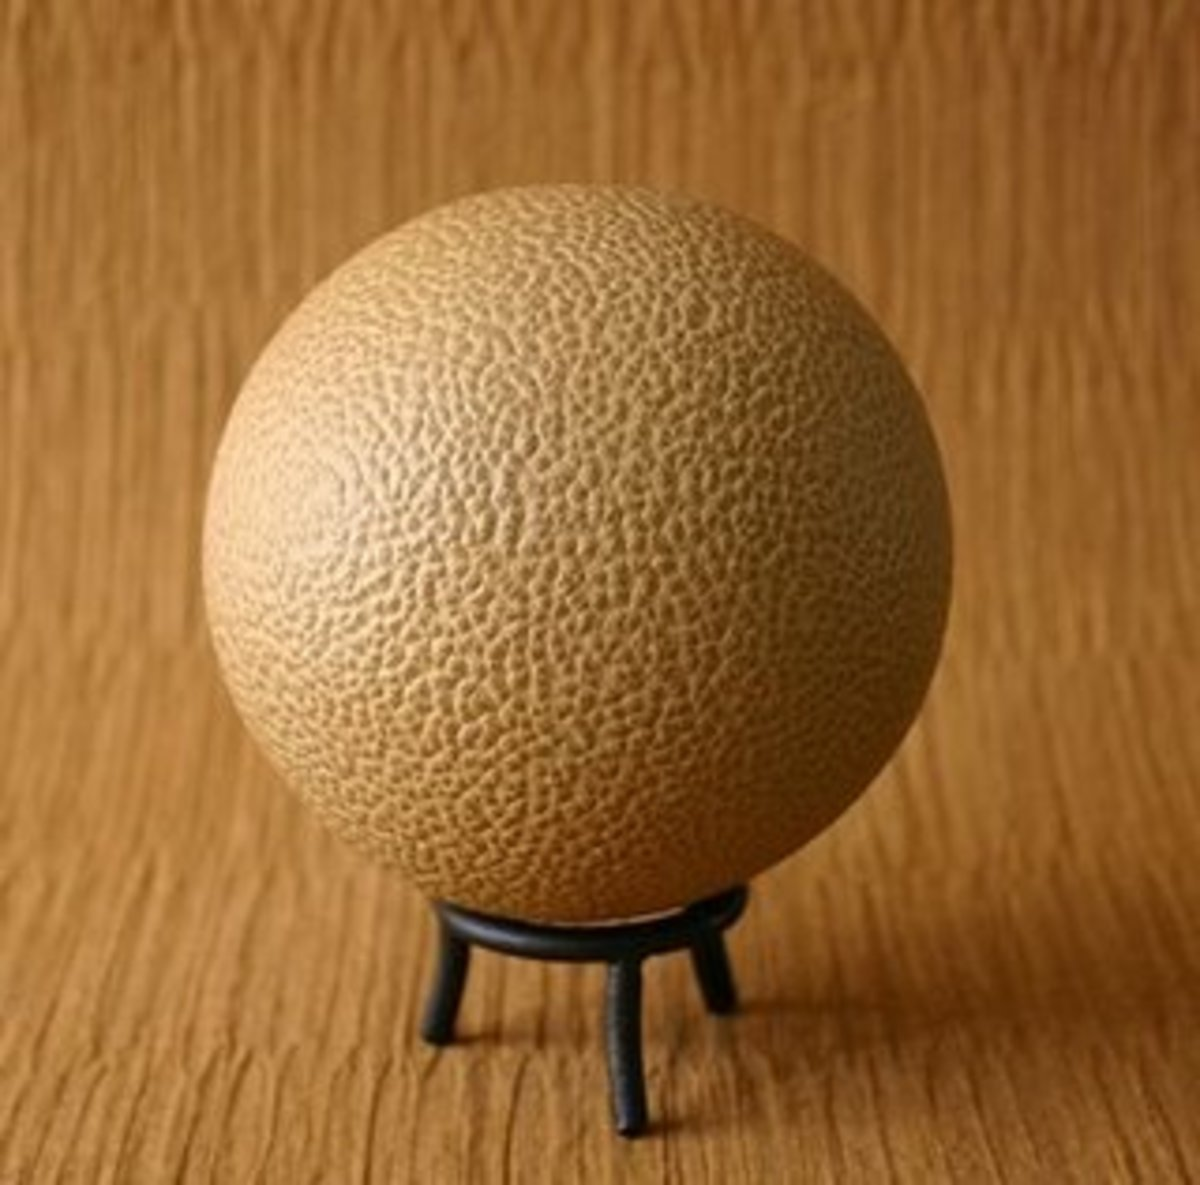 This mud ball dried with an outer texture.